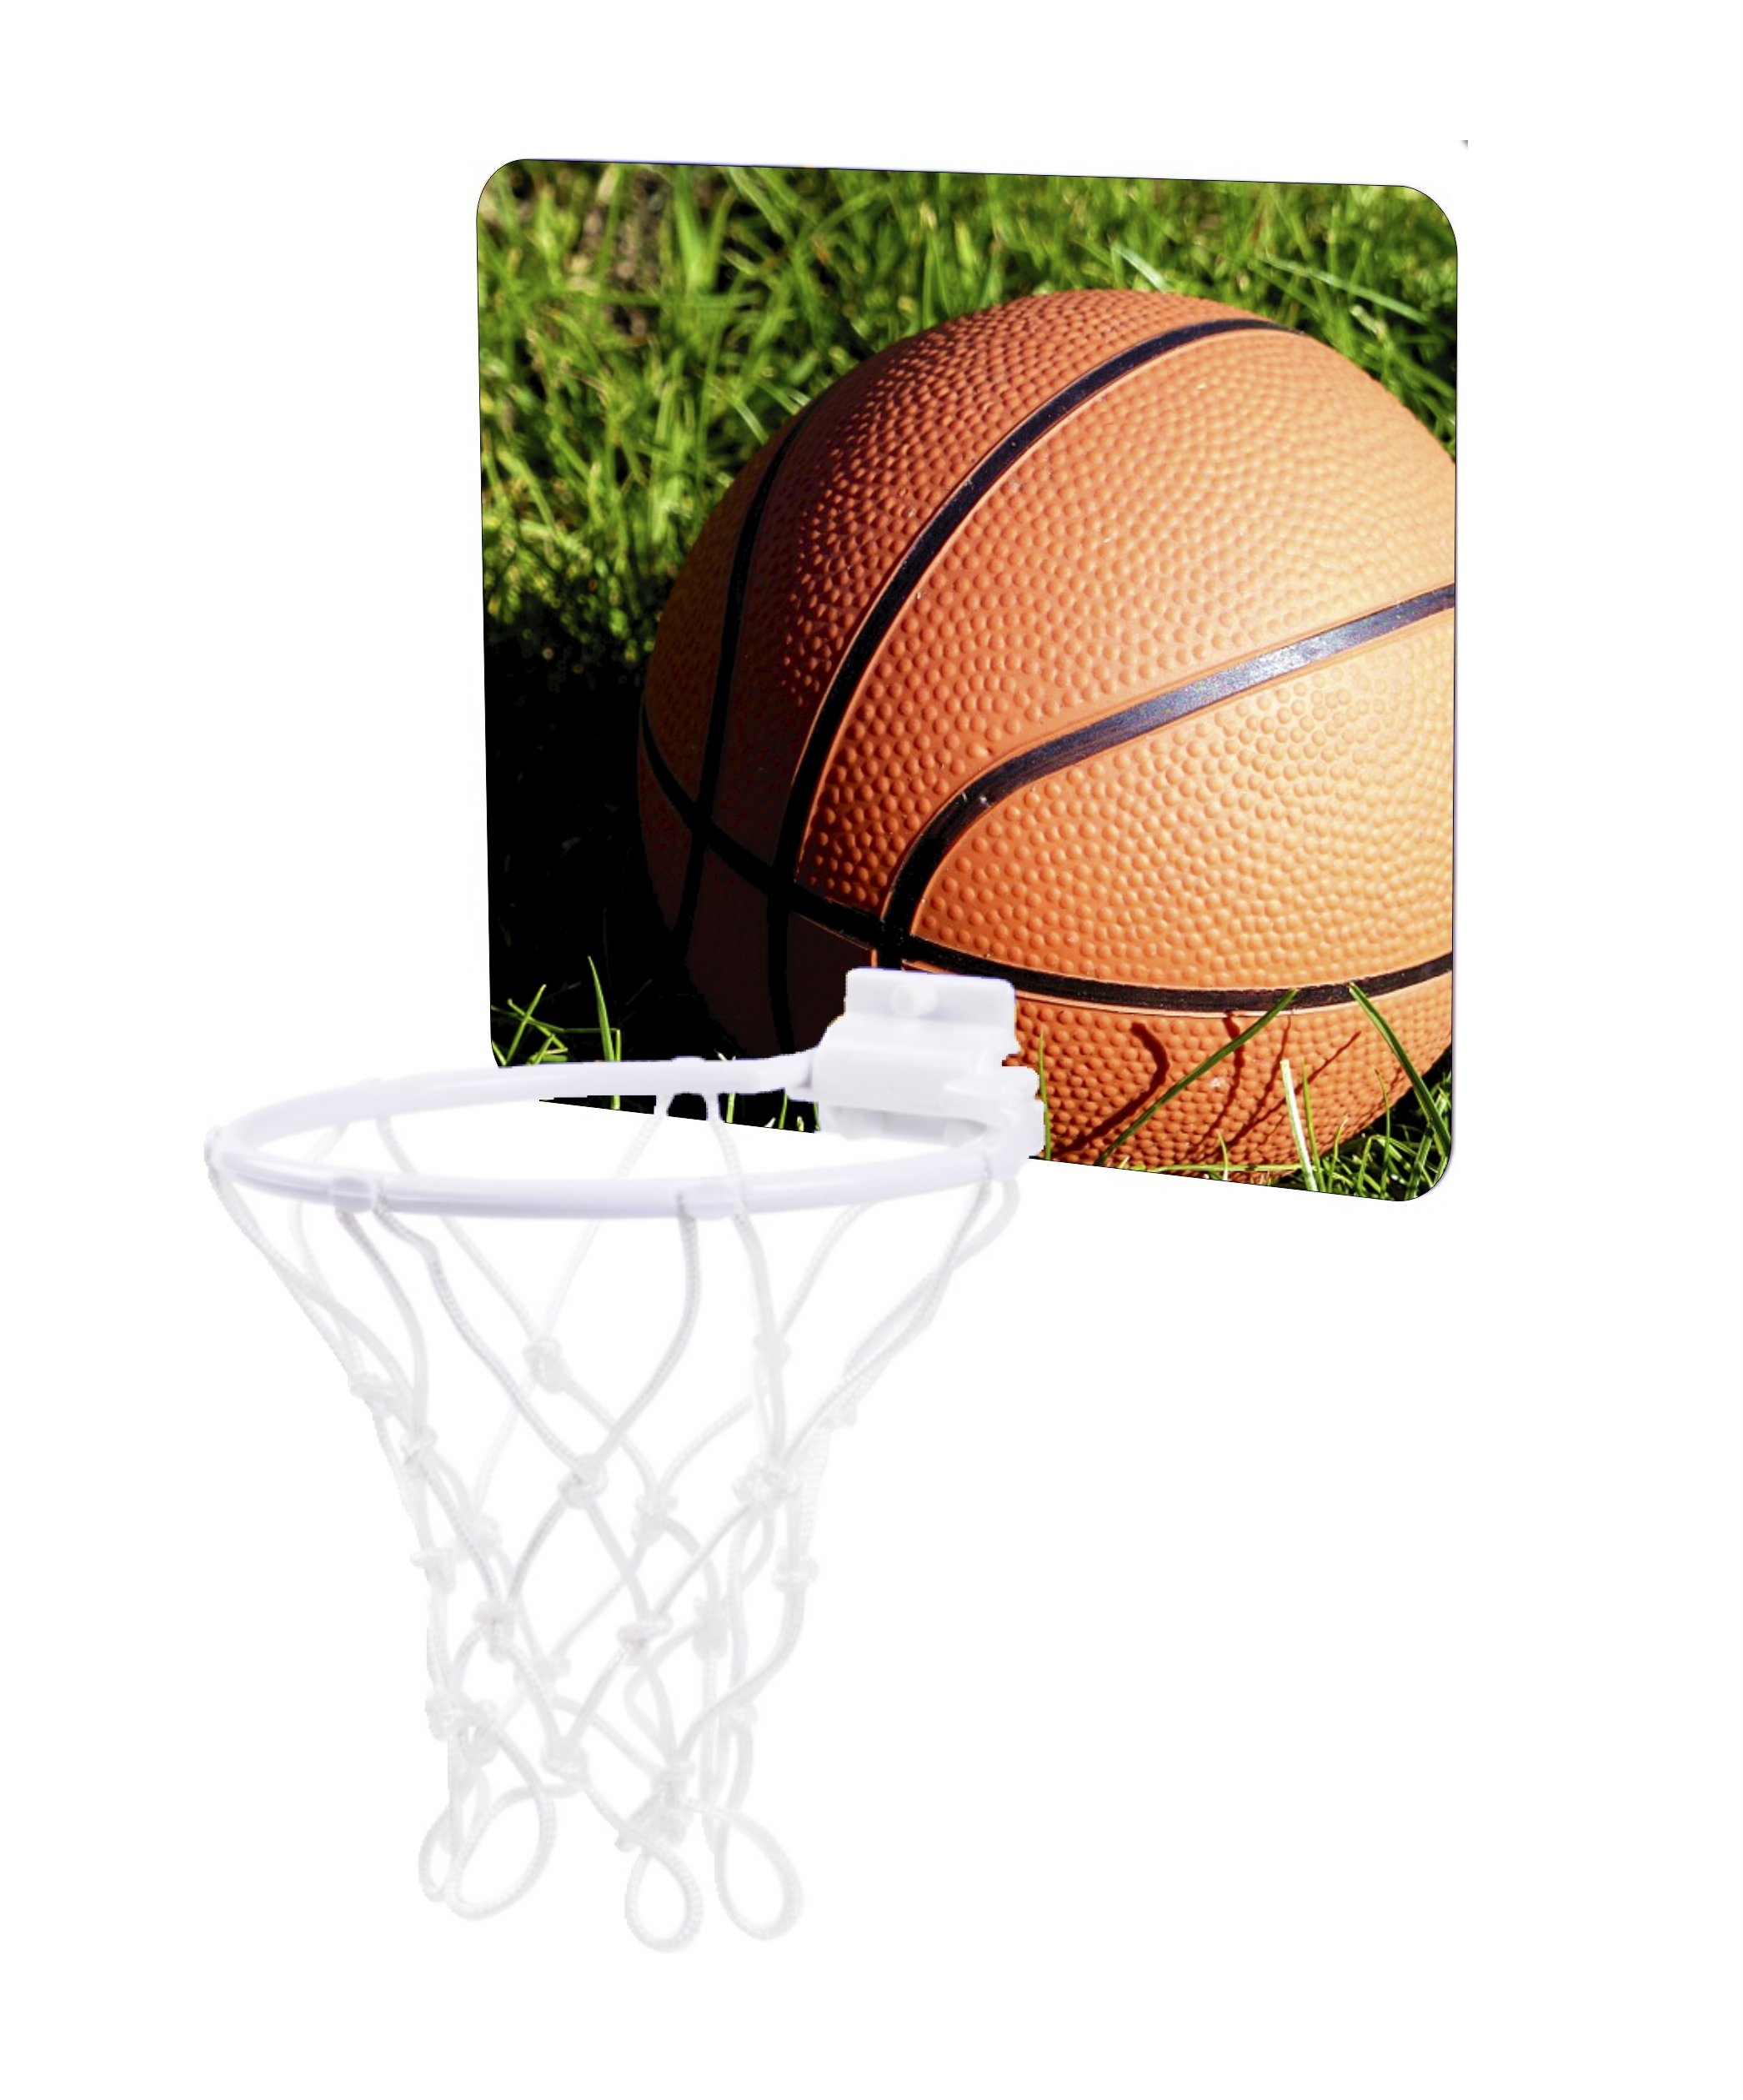 Jacks Outlet Basketball in the Grass - Childrens 7.5'' x 9'' Mini Basketball Backboard - Goal with 6'' Hoop by Jacks Outlet (Image #1)